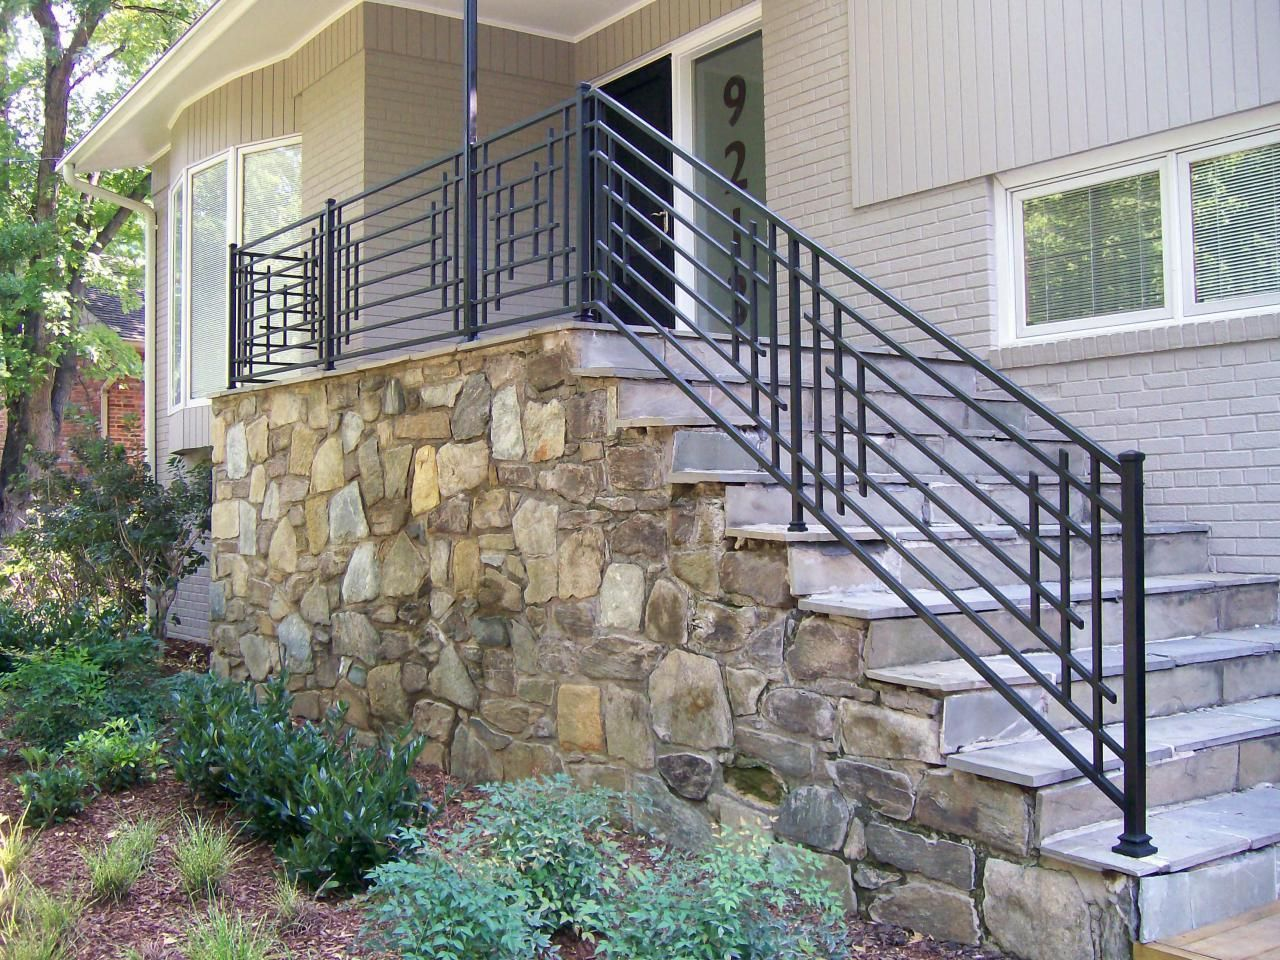 Stone Steps With Handrail Google Search Railings Outdoor Outdoor Stair Railing Exterior Handrail